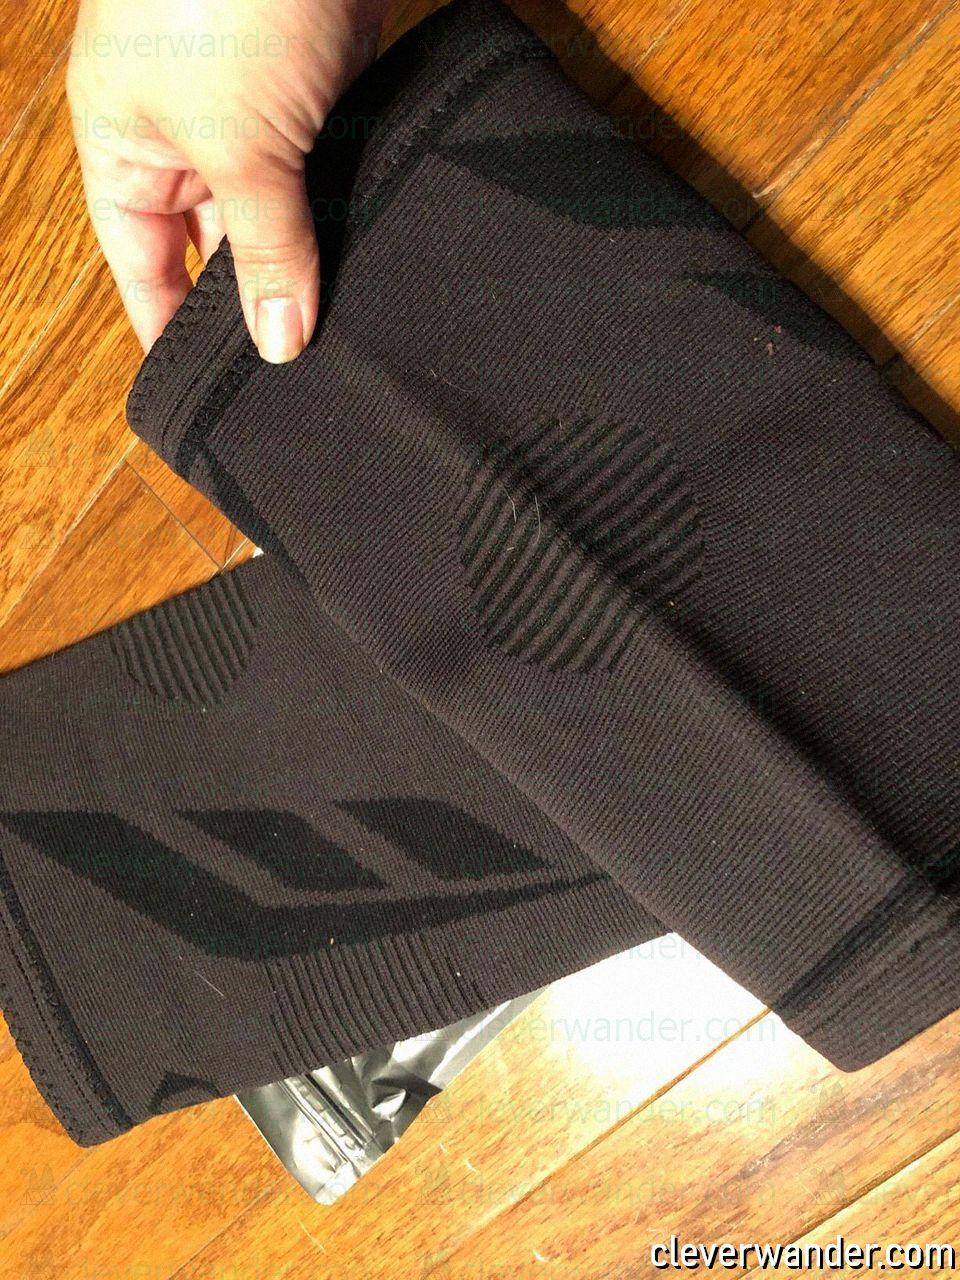 Cambivo 2 pack Knee Brace - image review 2